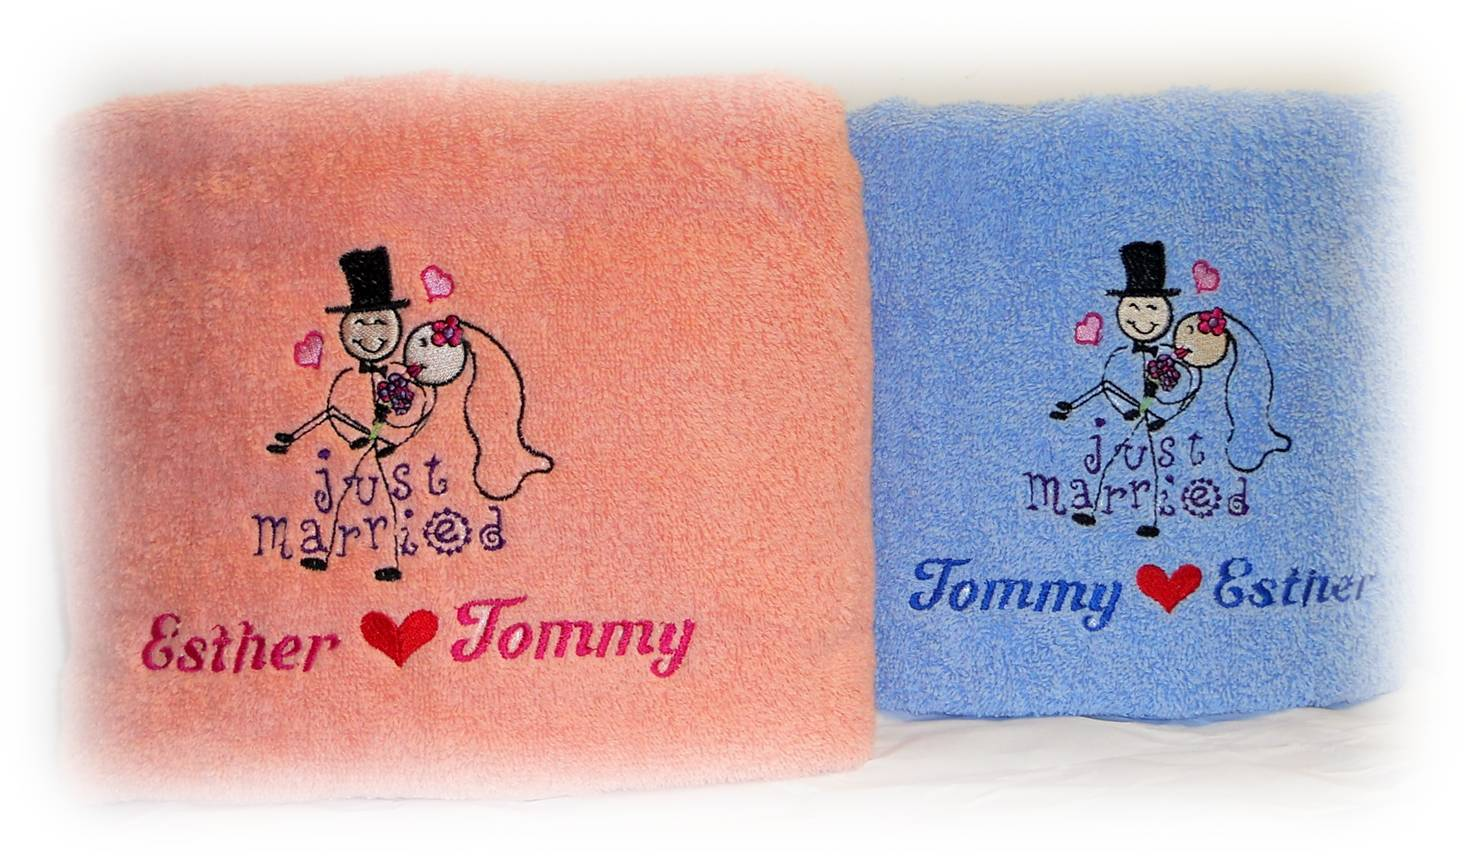 Wedding Gift Towels: A Blog On Customized Gift Ideas In Singapore: Wedding